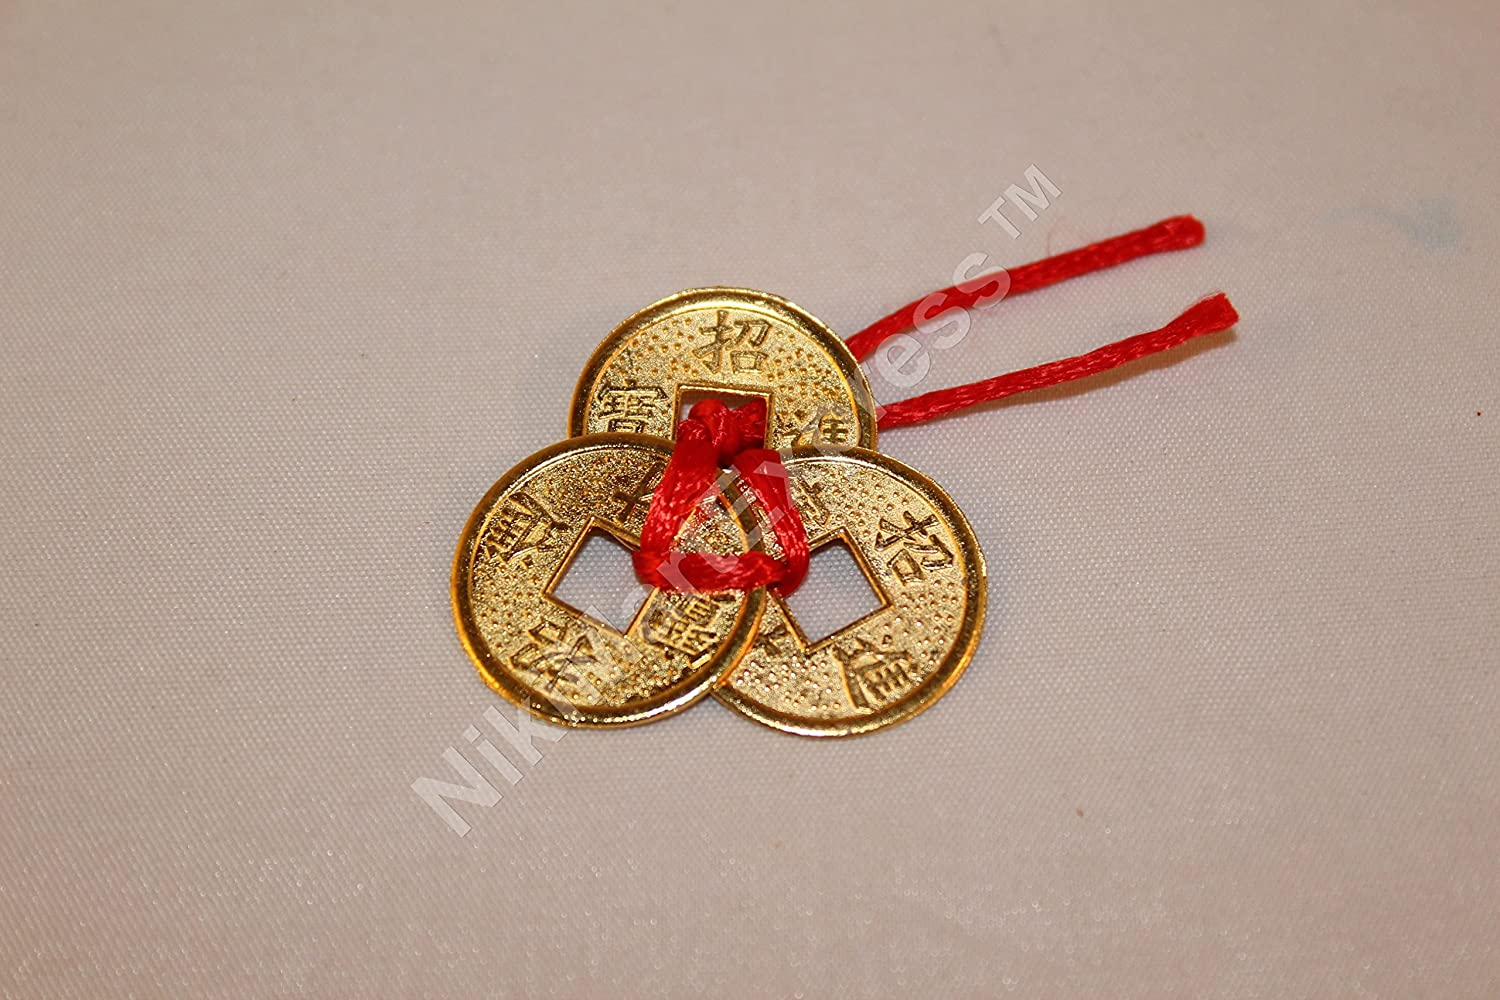 Chinese 3 Ribbon Tied (1x set) Lucky Wealth Health Ancient Golden Brass Coins Feng Shui Protection Amulet